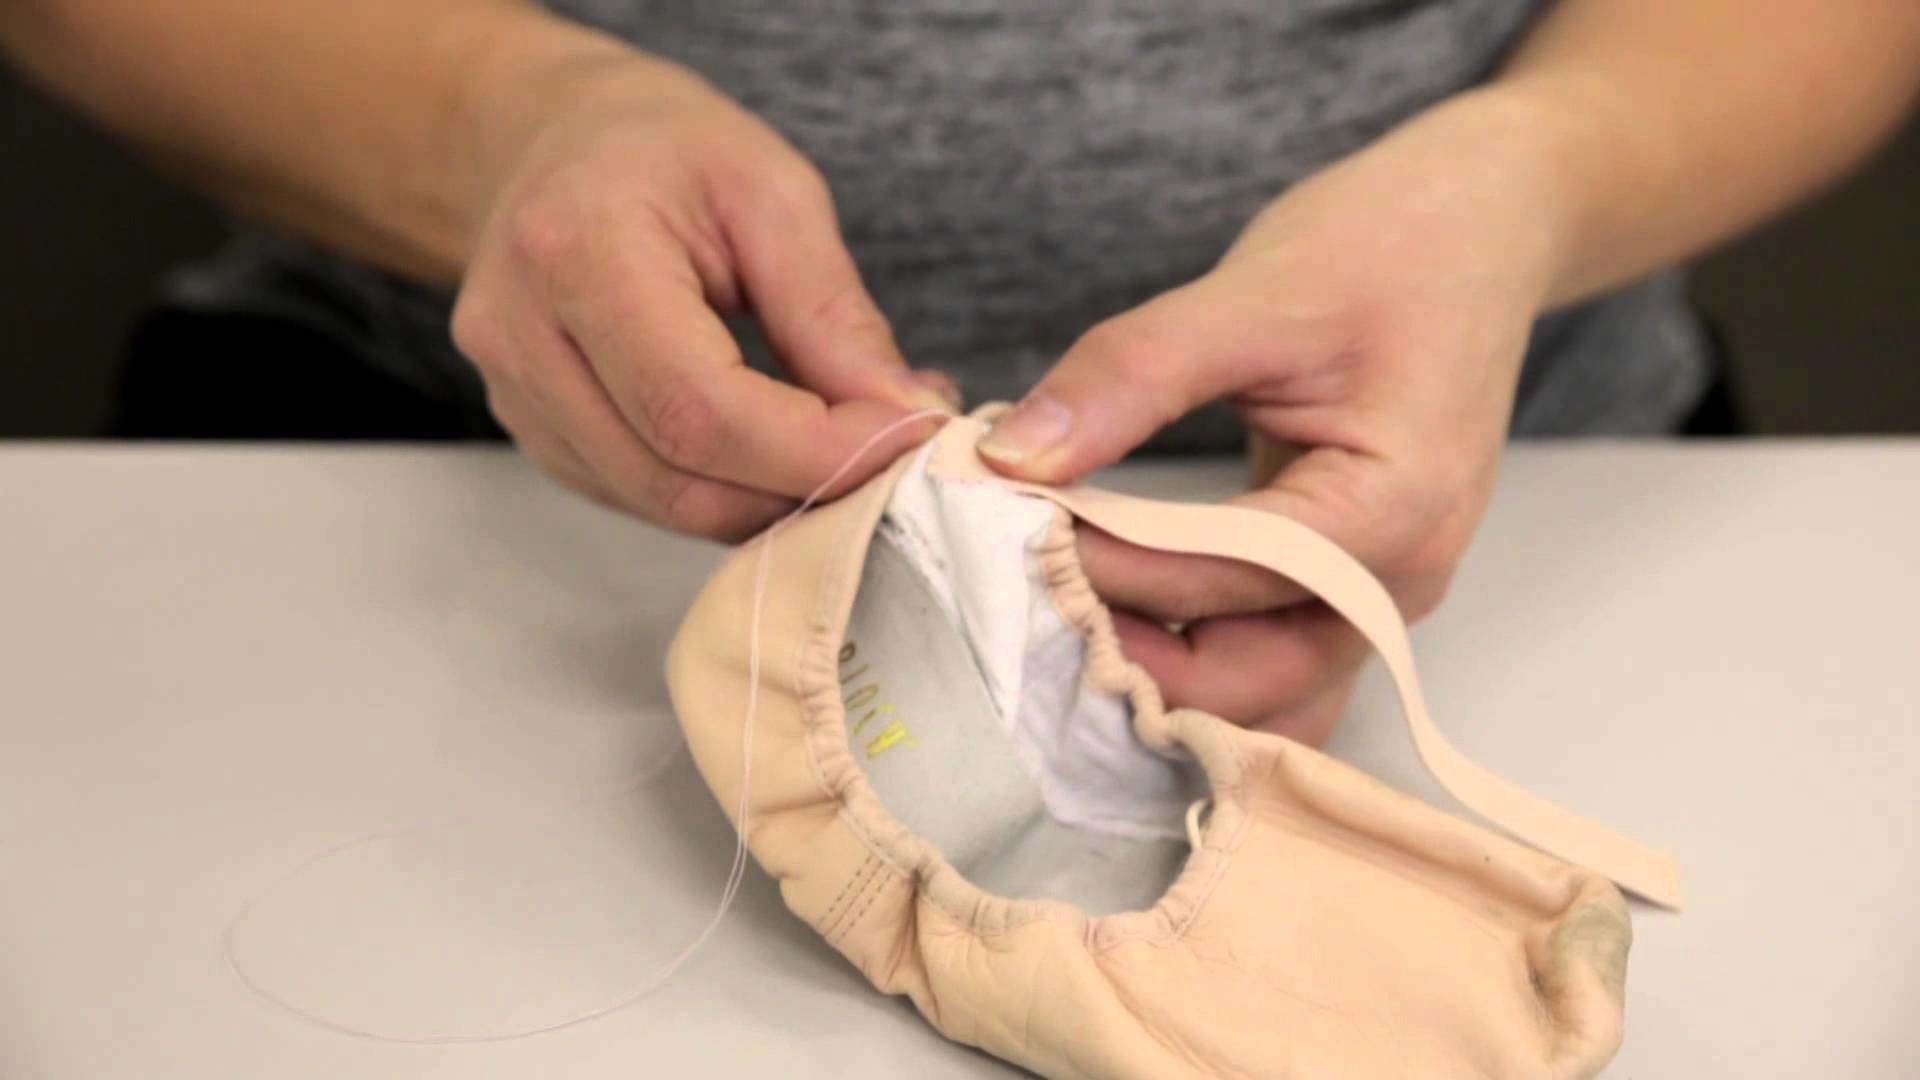 Premier School of Dance: How to sew elastics on flat ballet shoes